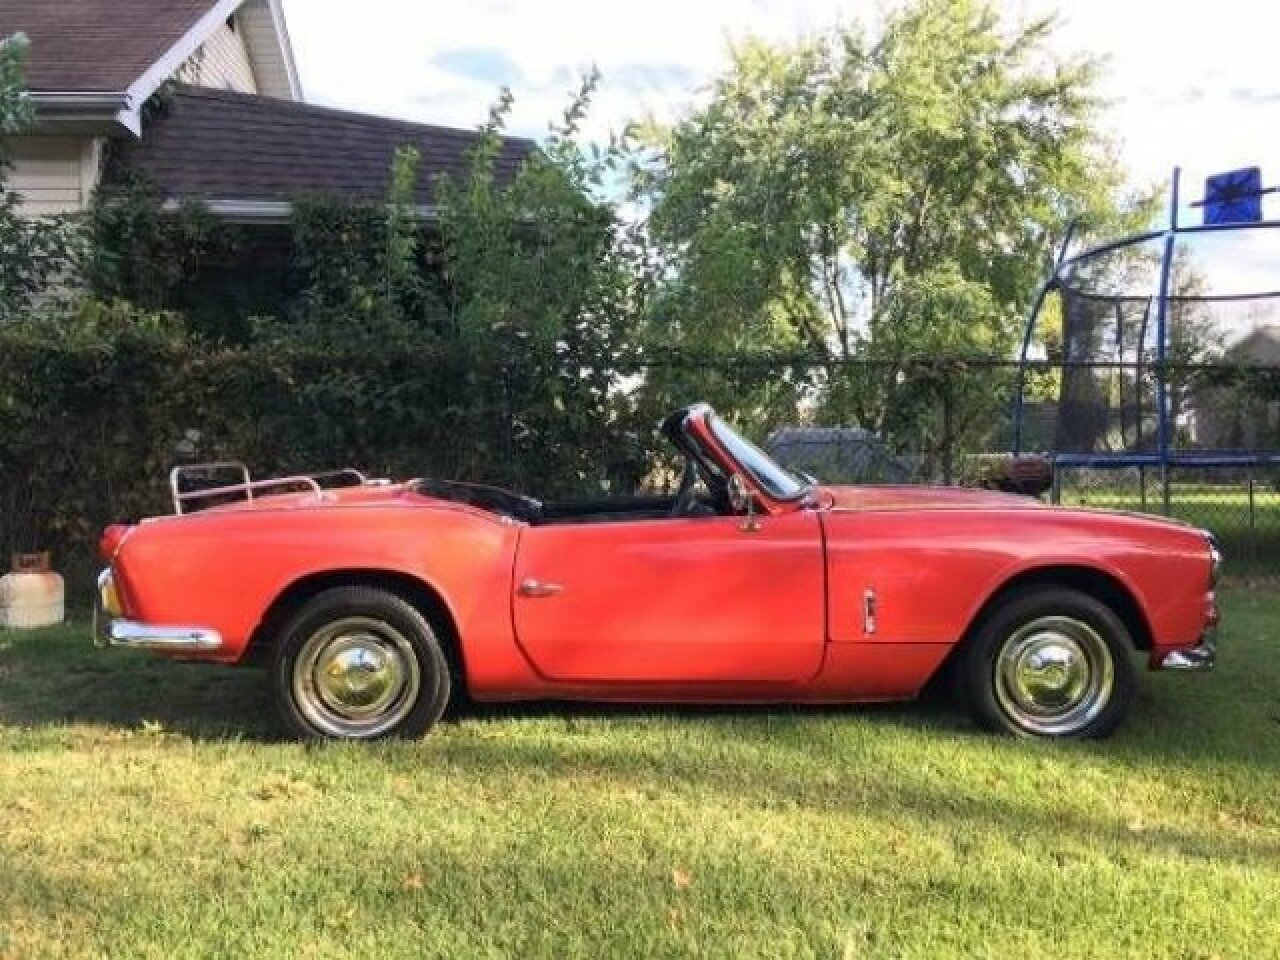 Classic Triumph Other 1963 For Sale: 1963 Triumph Spitfire For Sale Near Cadillac, Michigan